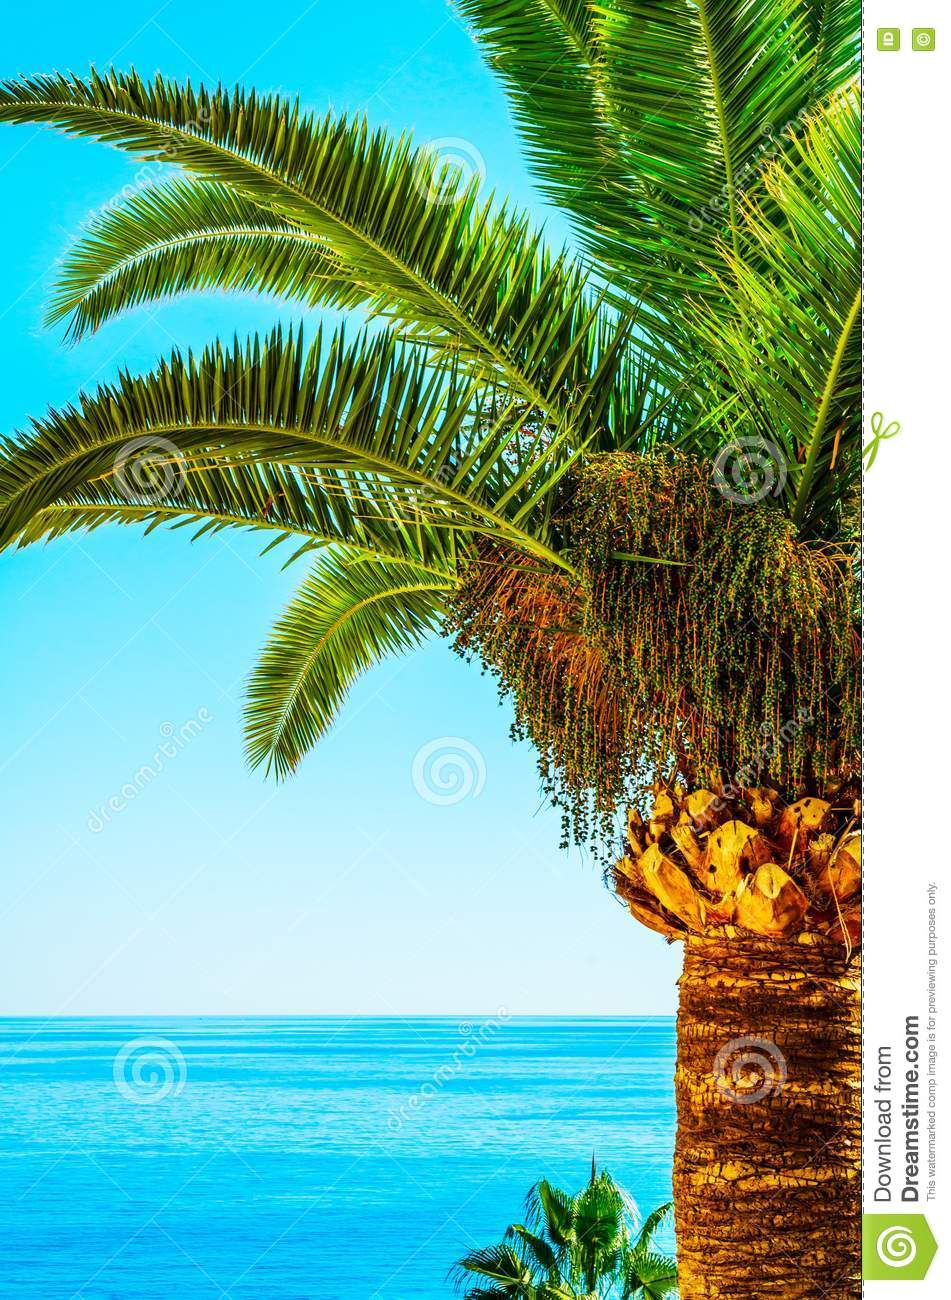 Beautiful Spreading Palm Tree On The Beach, Exotic Plants